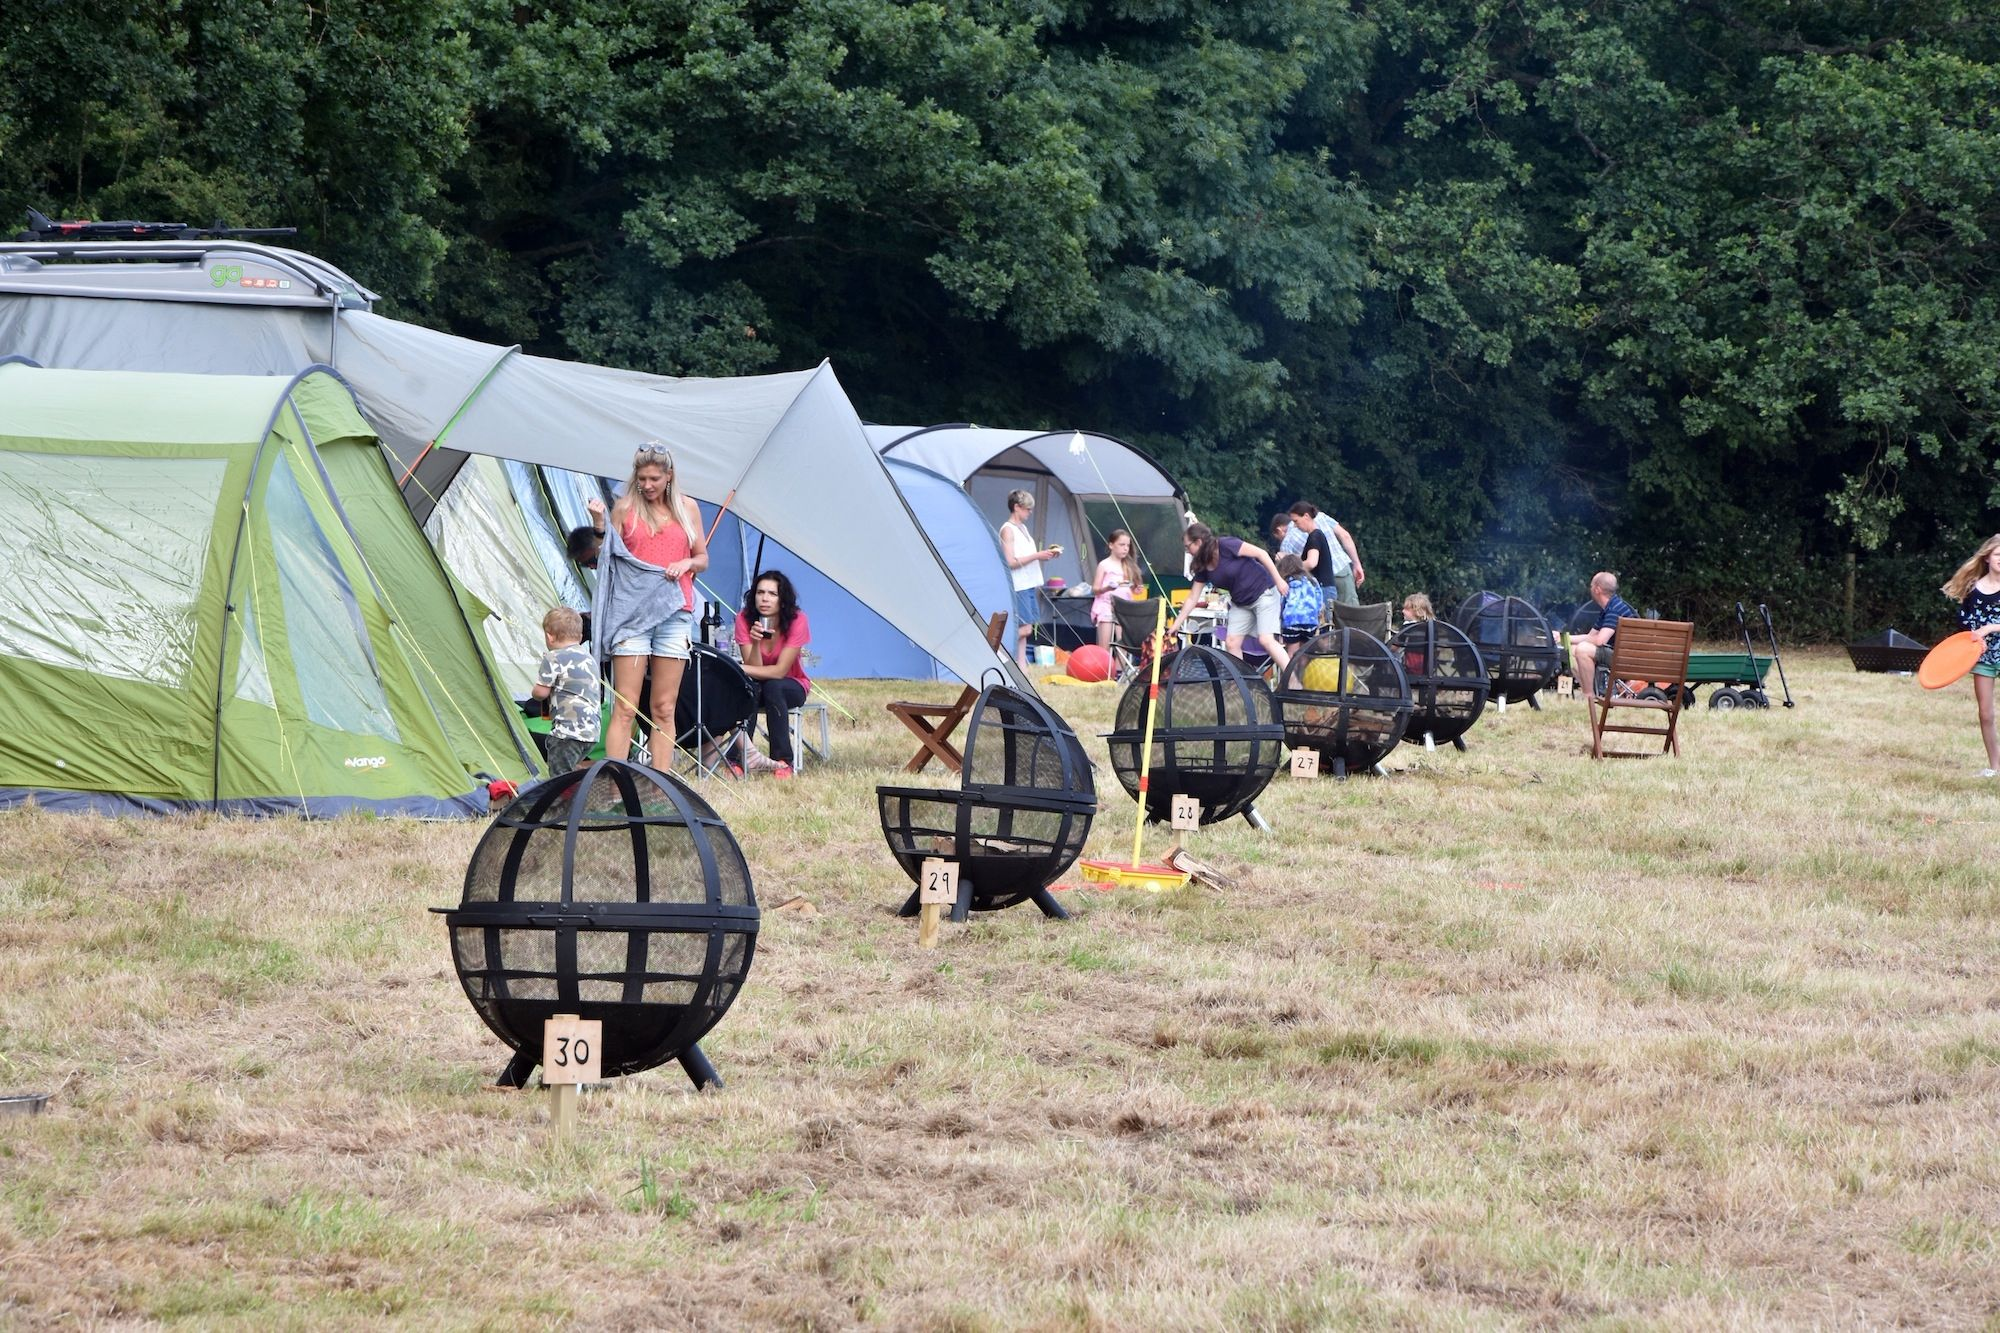 Beautifully located campsite on a National Trust property in the heart of the Surrey Hills.